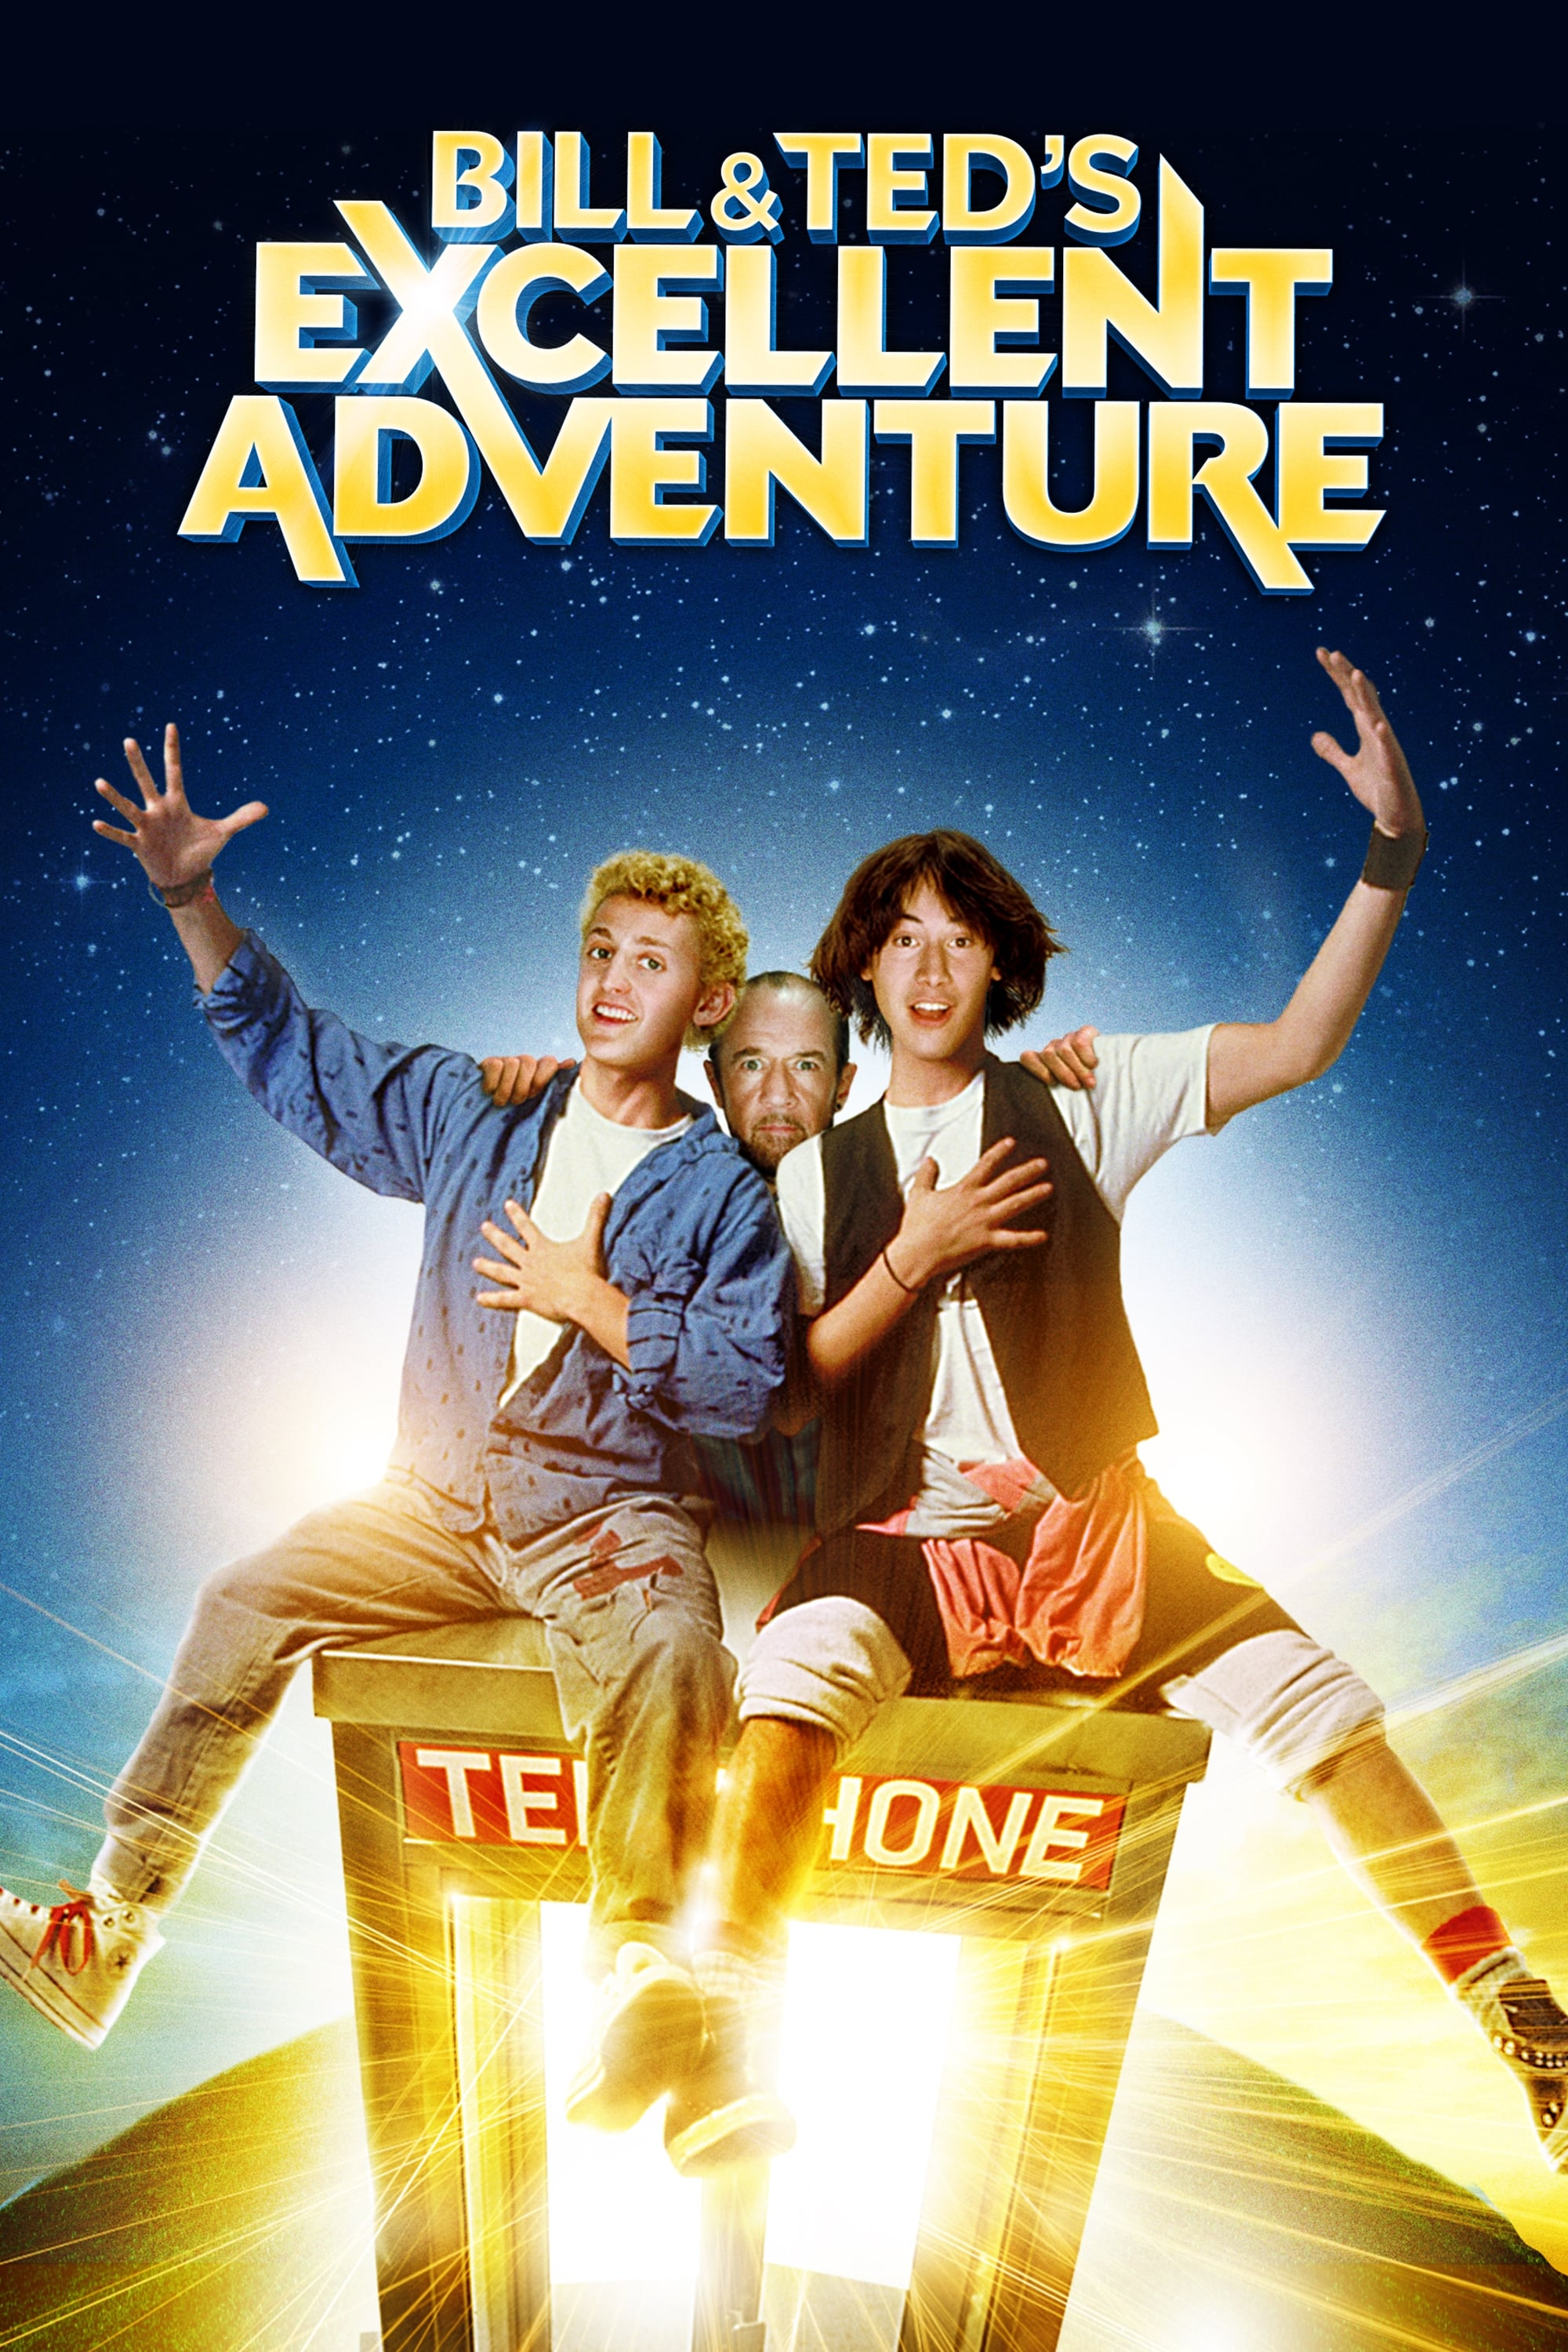 LExcellentes-Aventures-De-Bill-Et-Ted-Bill-Teds-Adventure-19